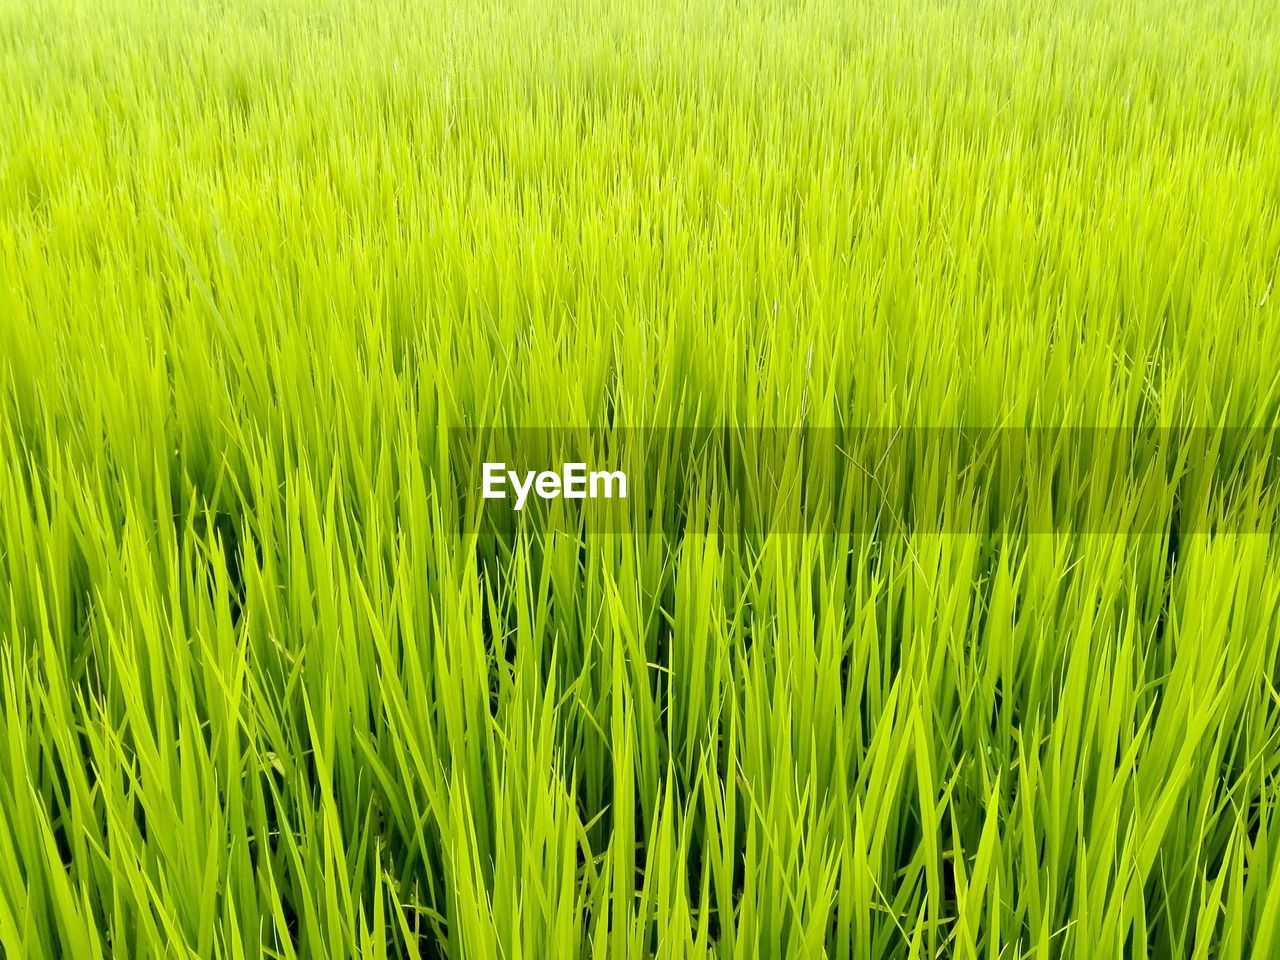 green color, plant, agriculture, field, rural scene, growth, landscape, crop, grass, cereal plant, backgrounds, full frame, land, farm, beauty in nature, nature, no people, day, freshness, rice - cereal plant, outdoors